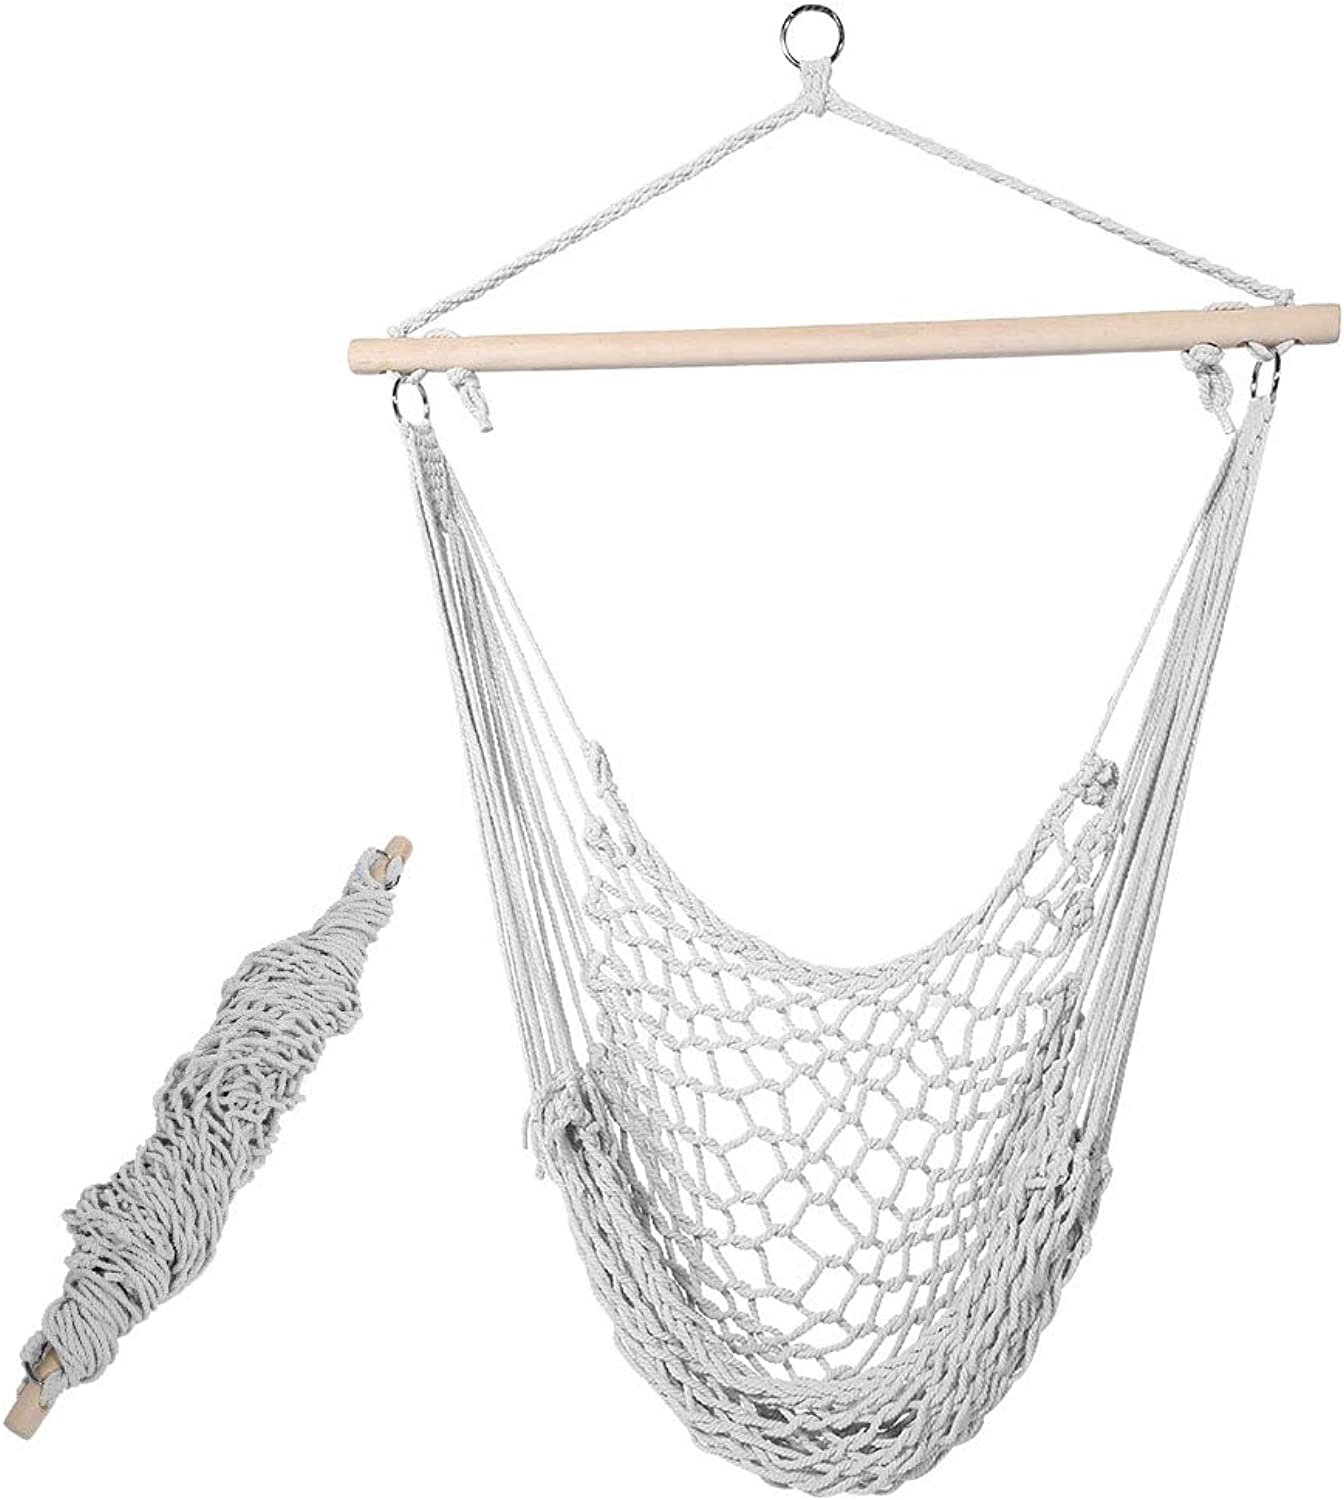 Camping Hammock, Net Swinging Hanging Bed for Outdoor Camping Garden Travel Beach